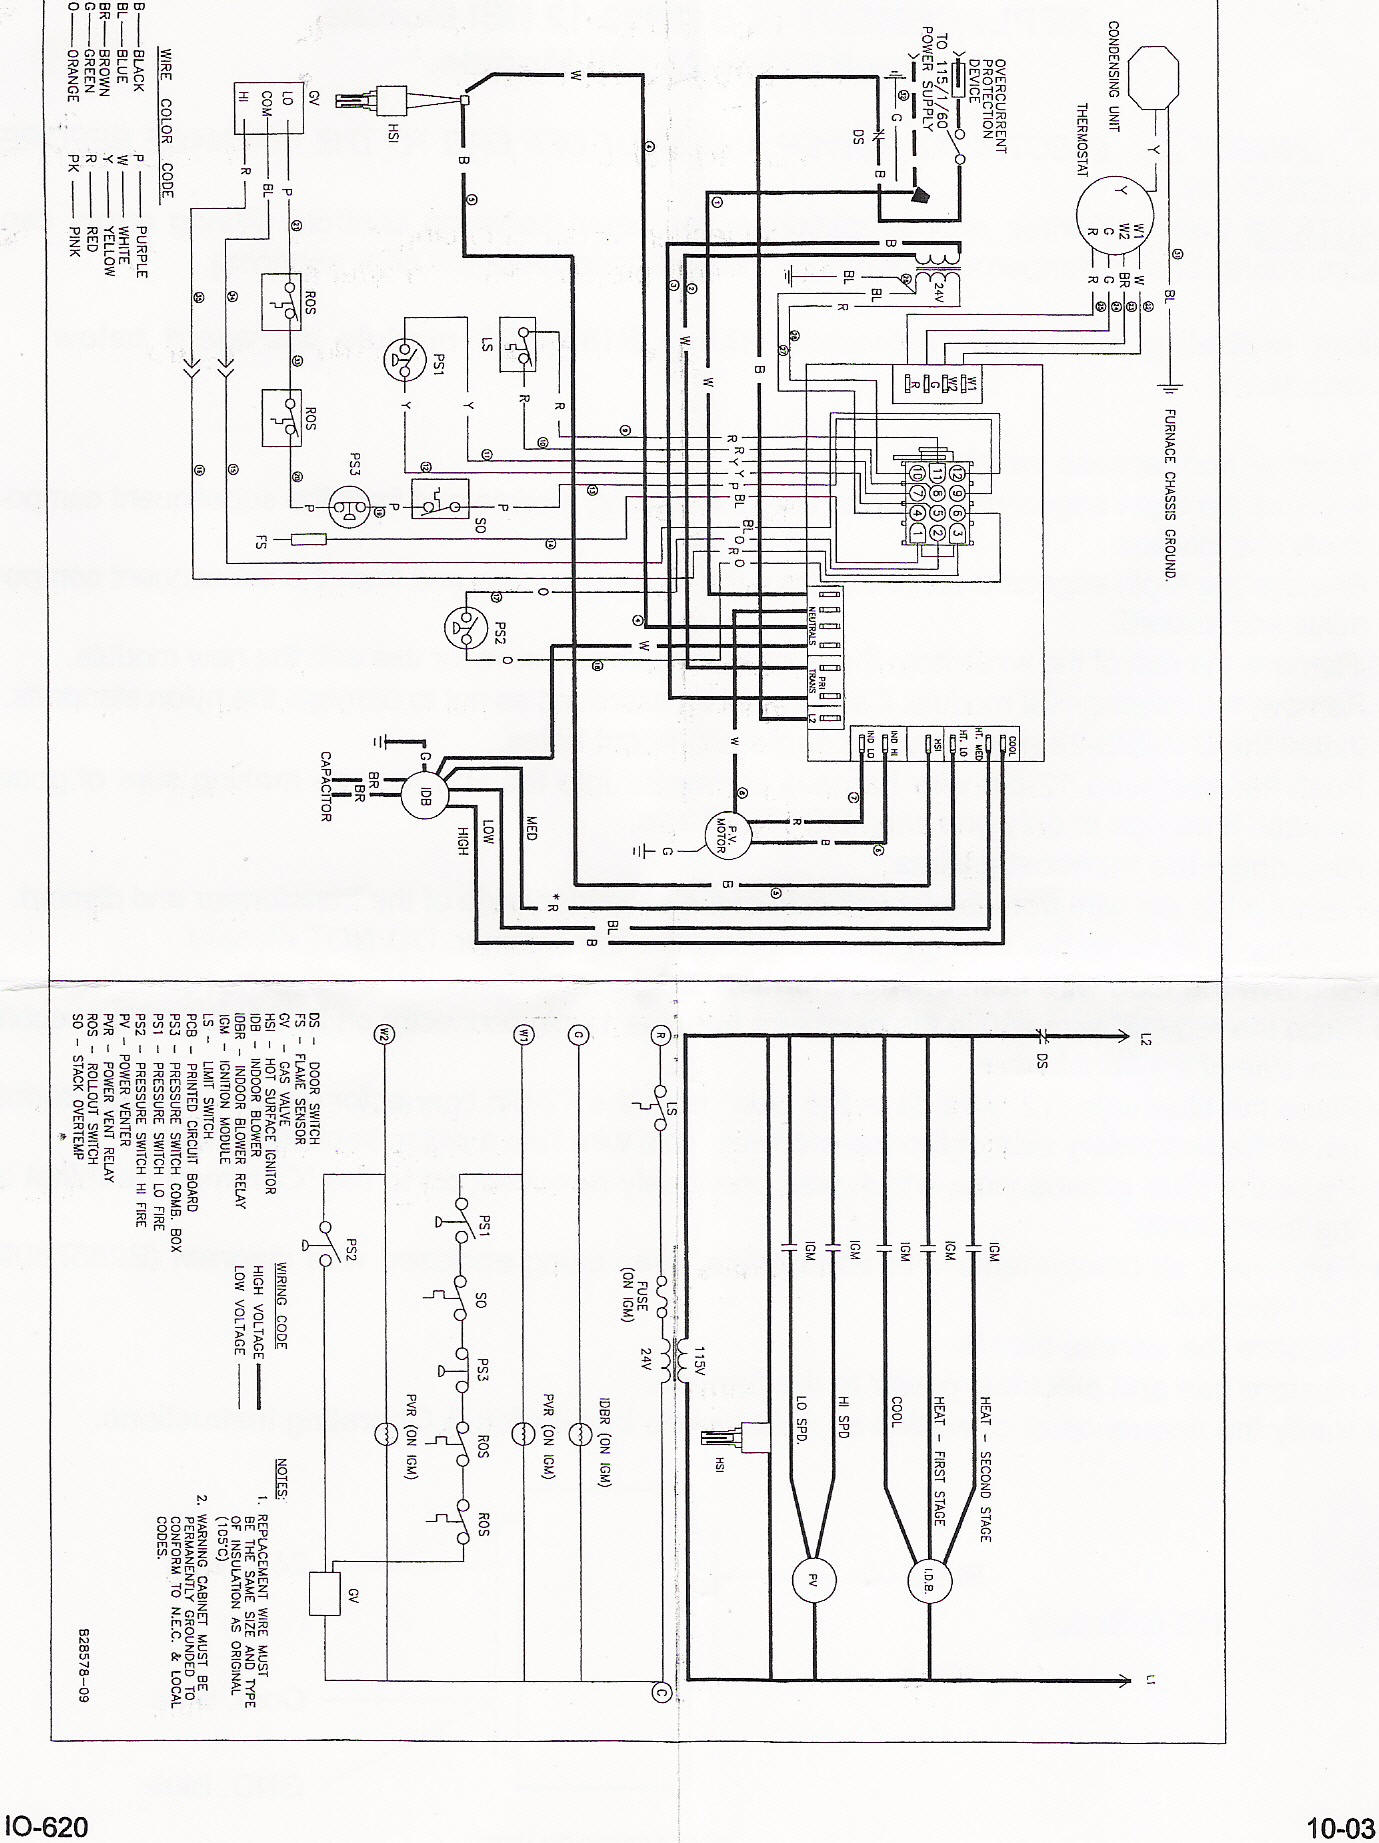 goodma2 instr goodman control board b18099 23 instructions Basic Electrical Wiring Diagrams at crackthecode.co